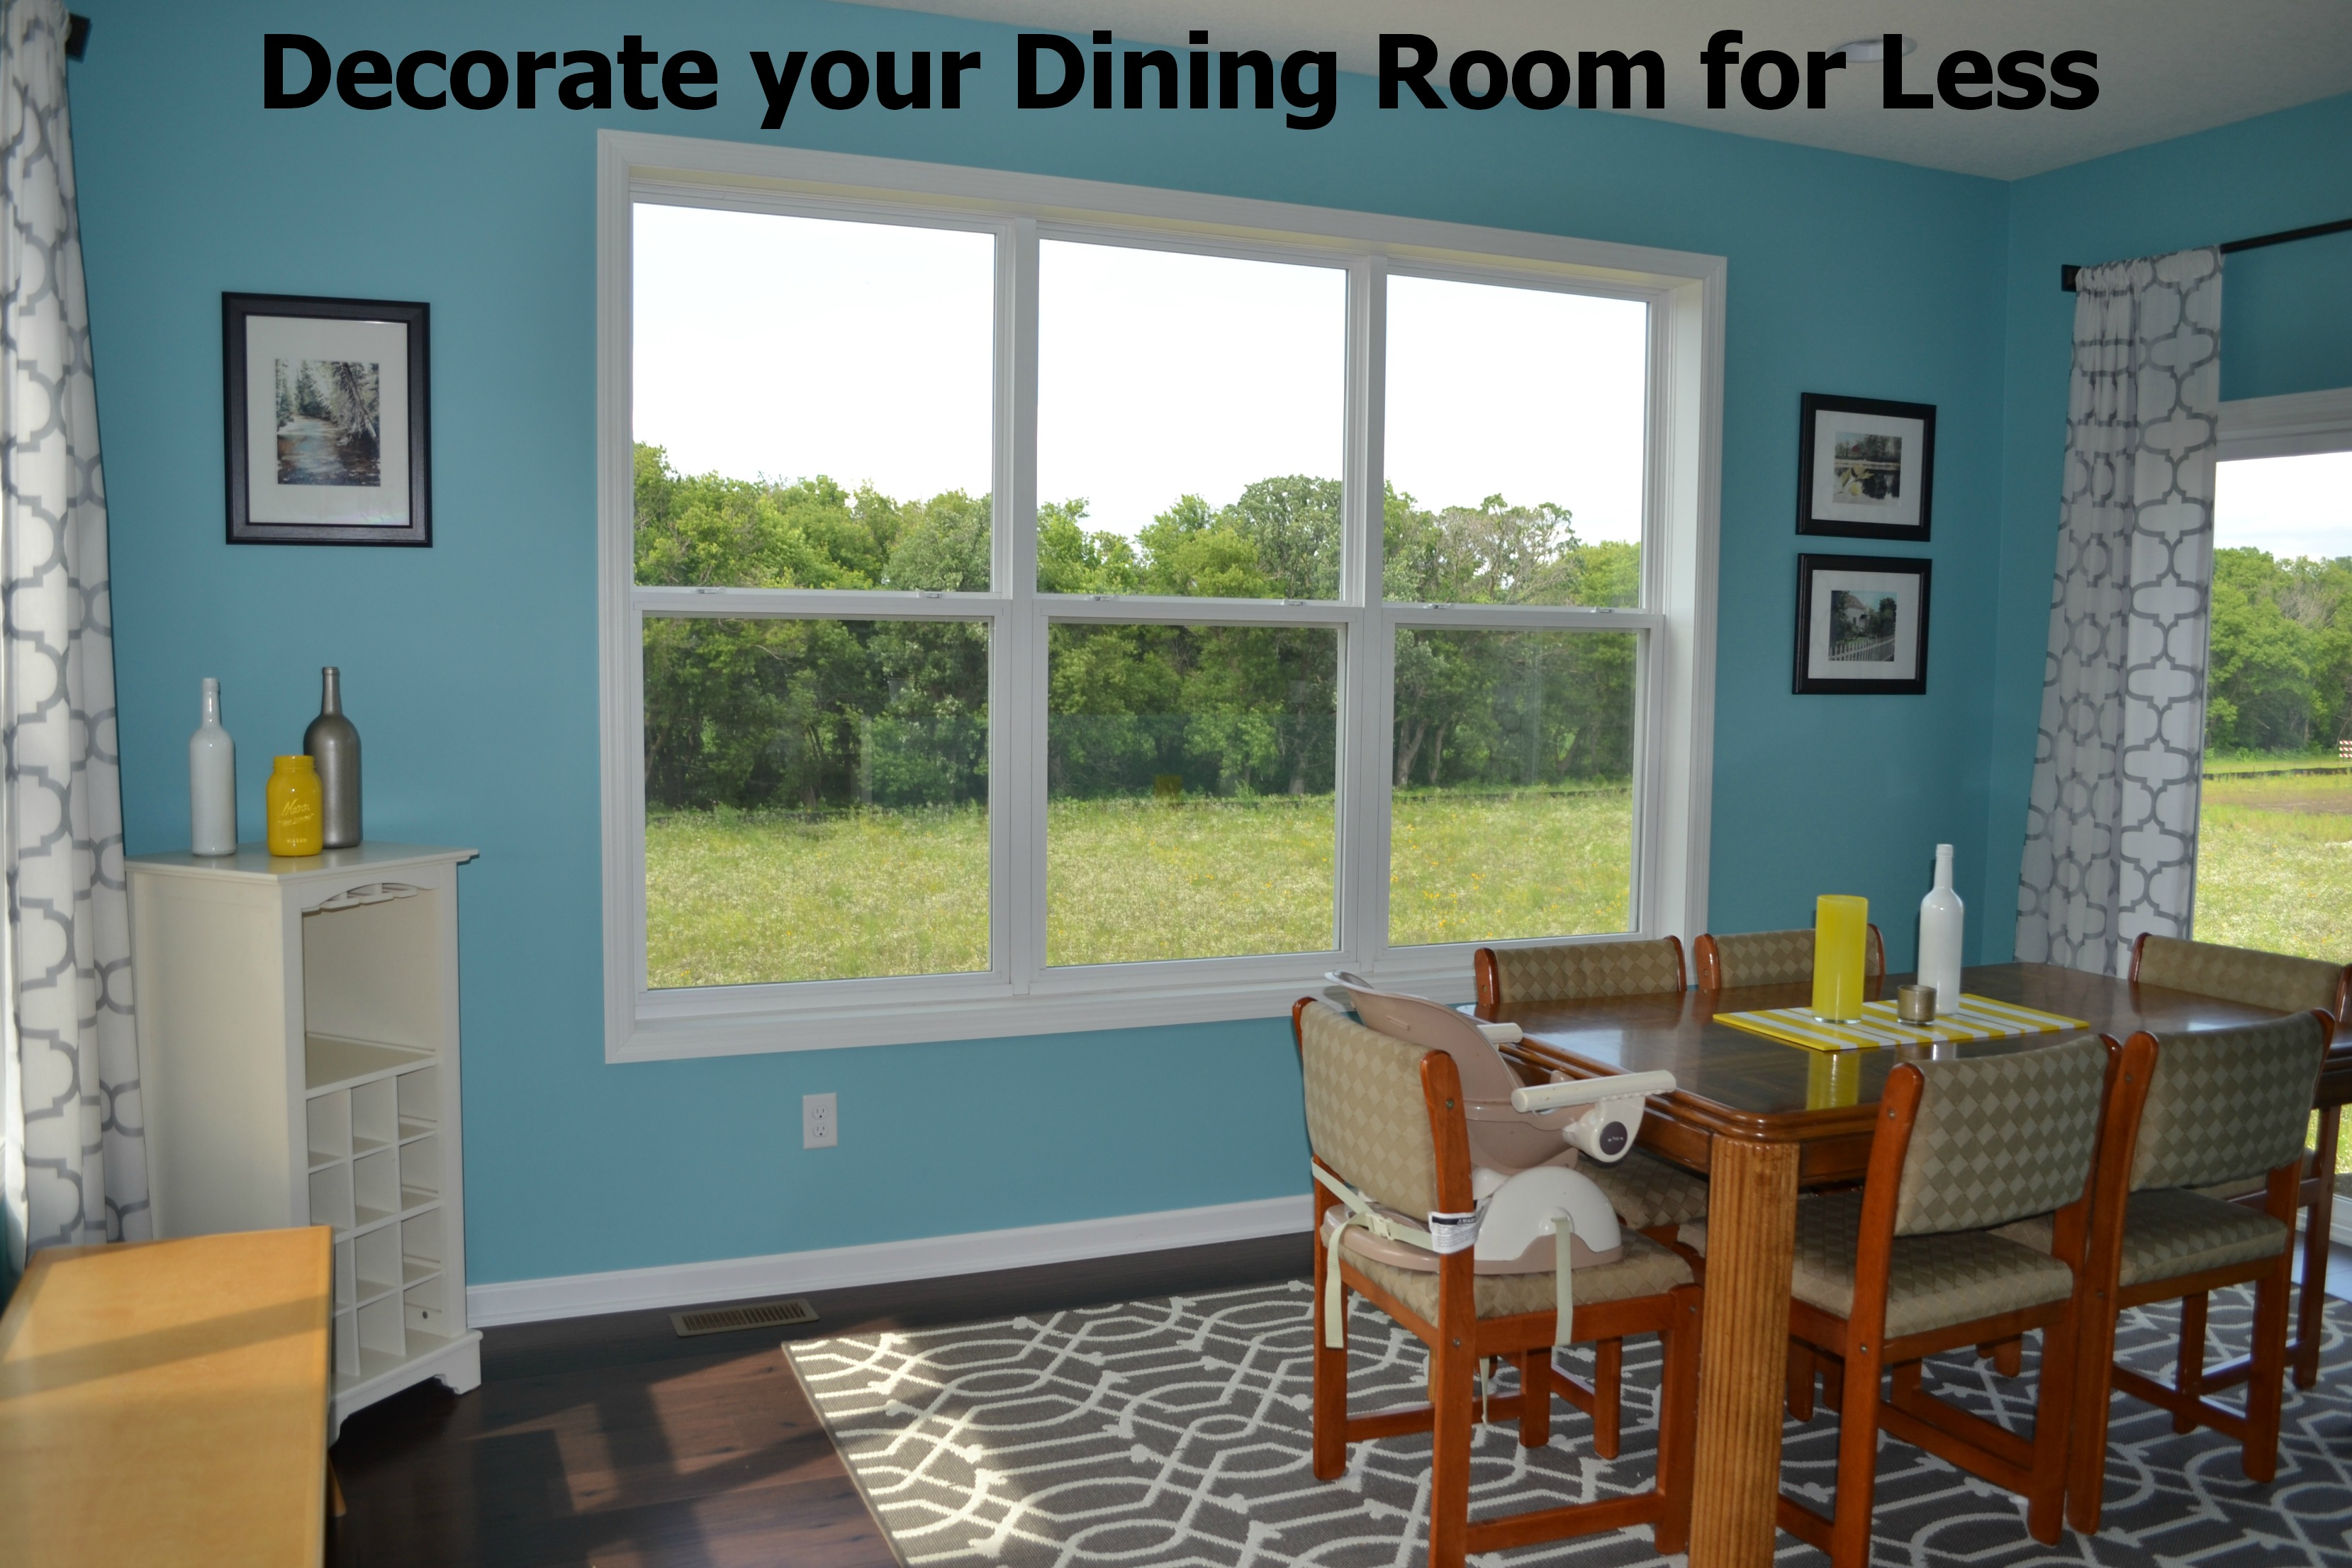 decorate your dining room for less - Decorating Your Dining Room